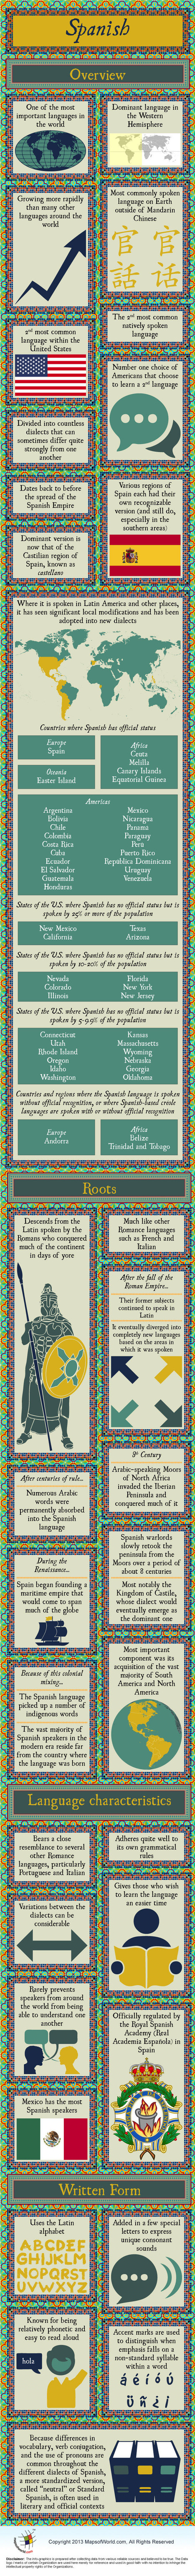 Spanish Language – Facts & Infographic | Languages of the World | Learn Spanish | Scoop.it